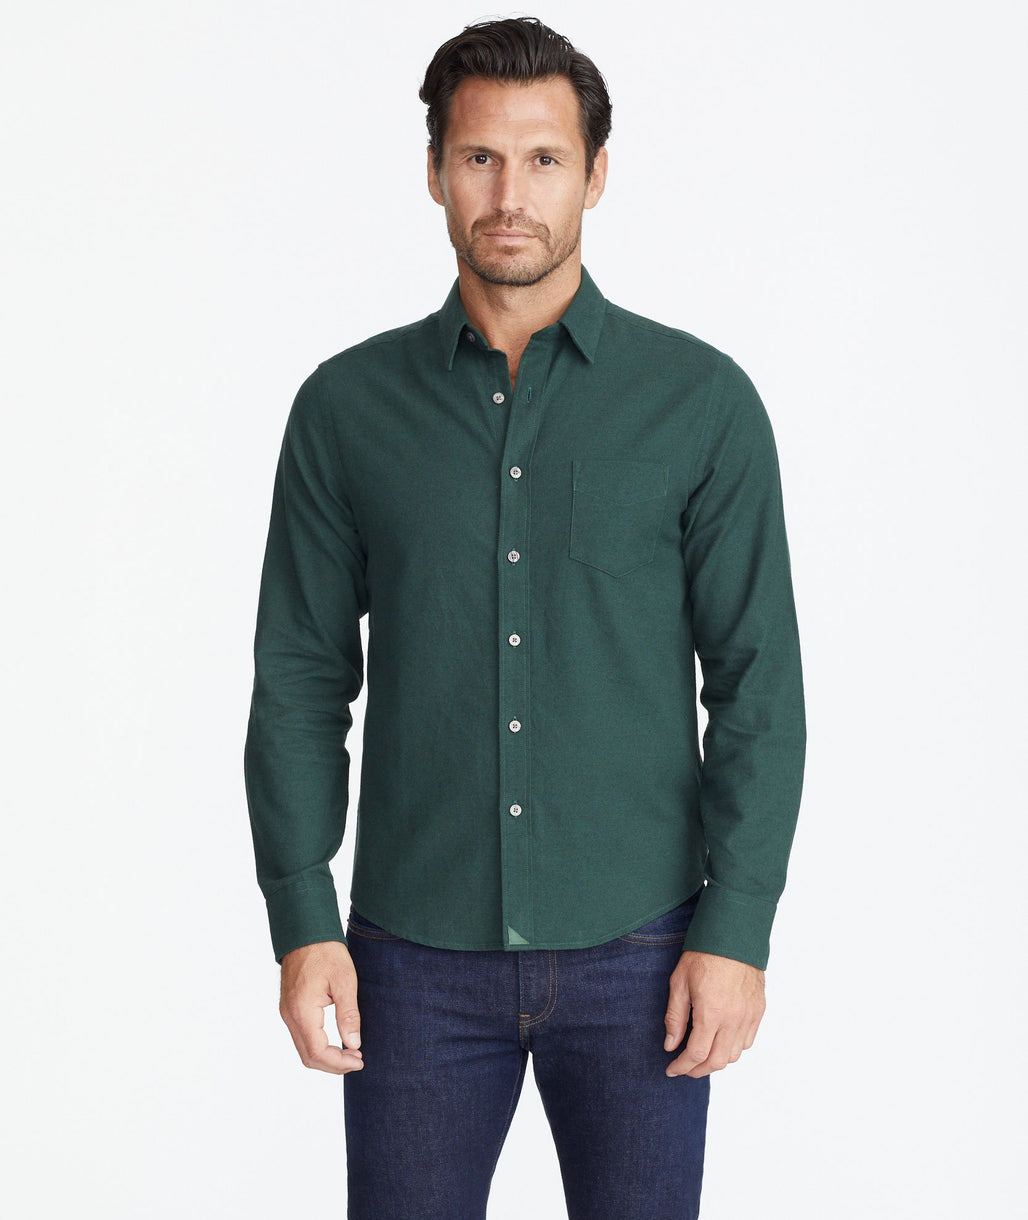 Model wearing a Green Flannel Sherwood Shirt